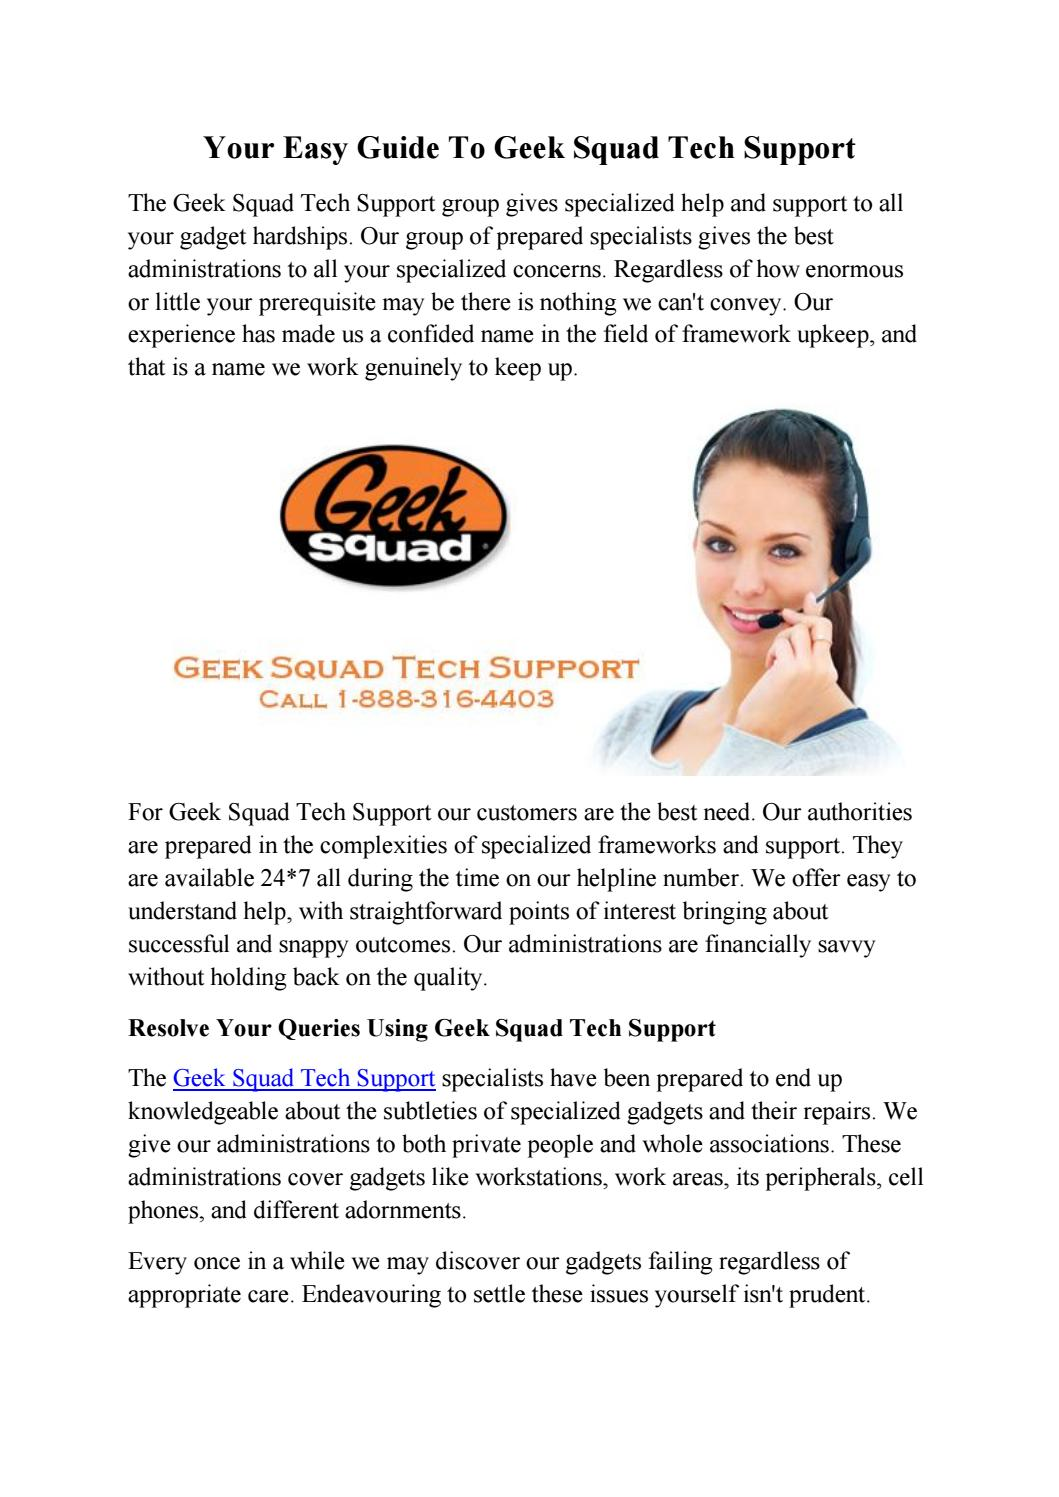 Your easy guide to geek squad tech support by Geek Squad Tech Support -  issuu